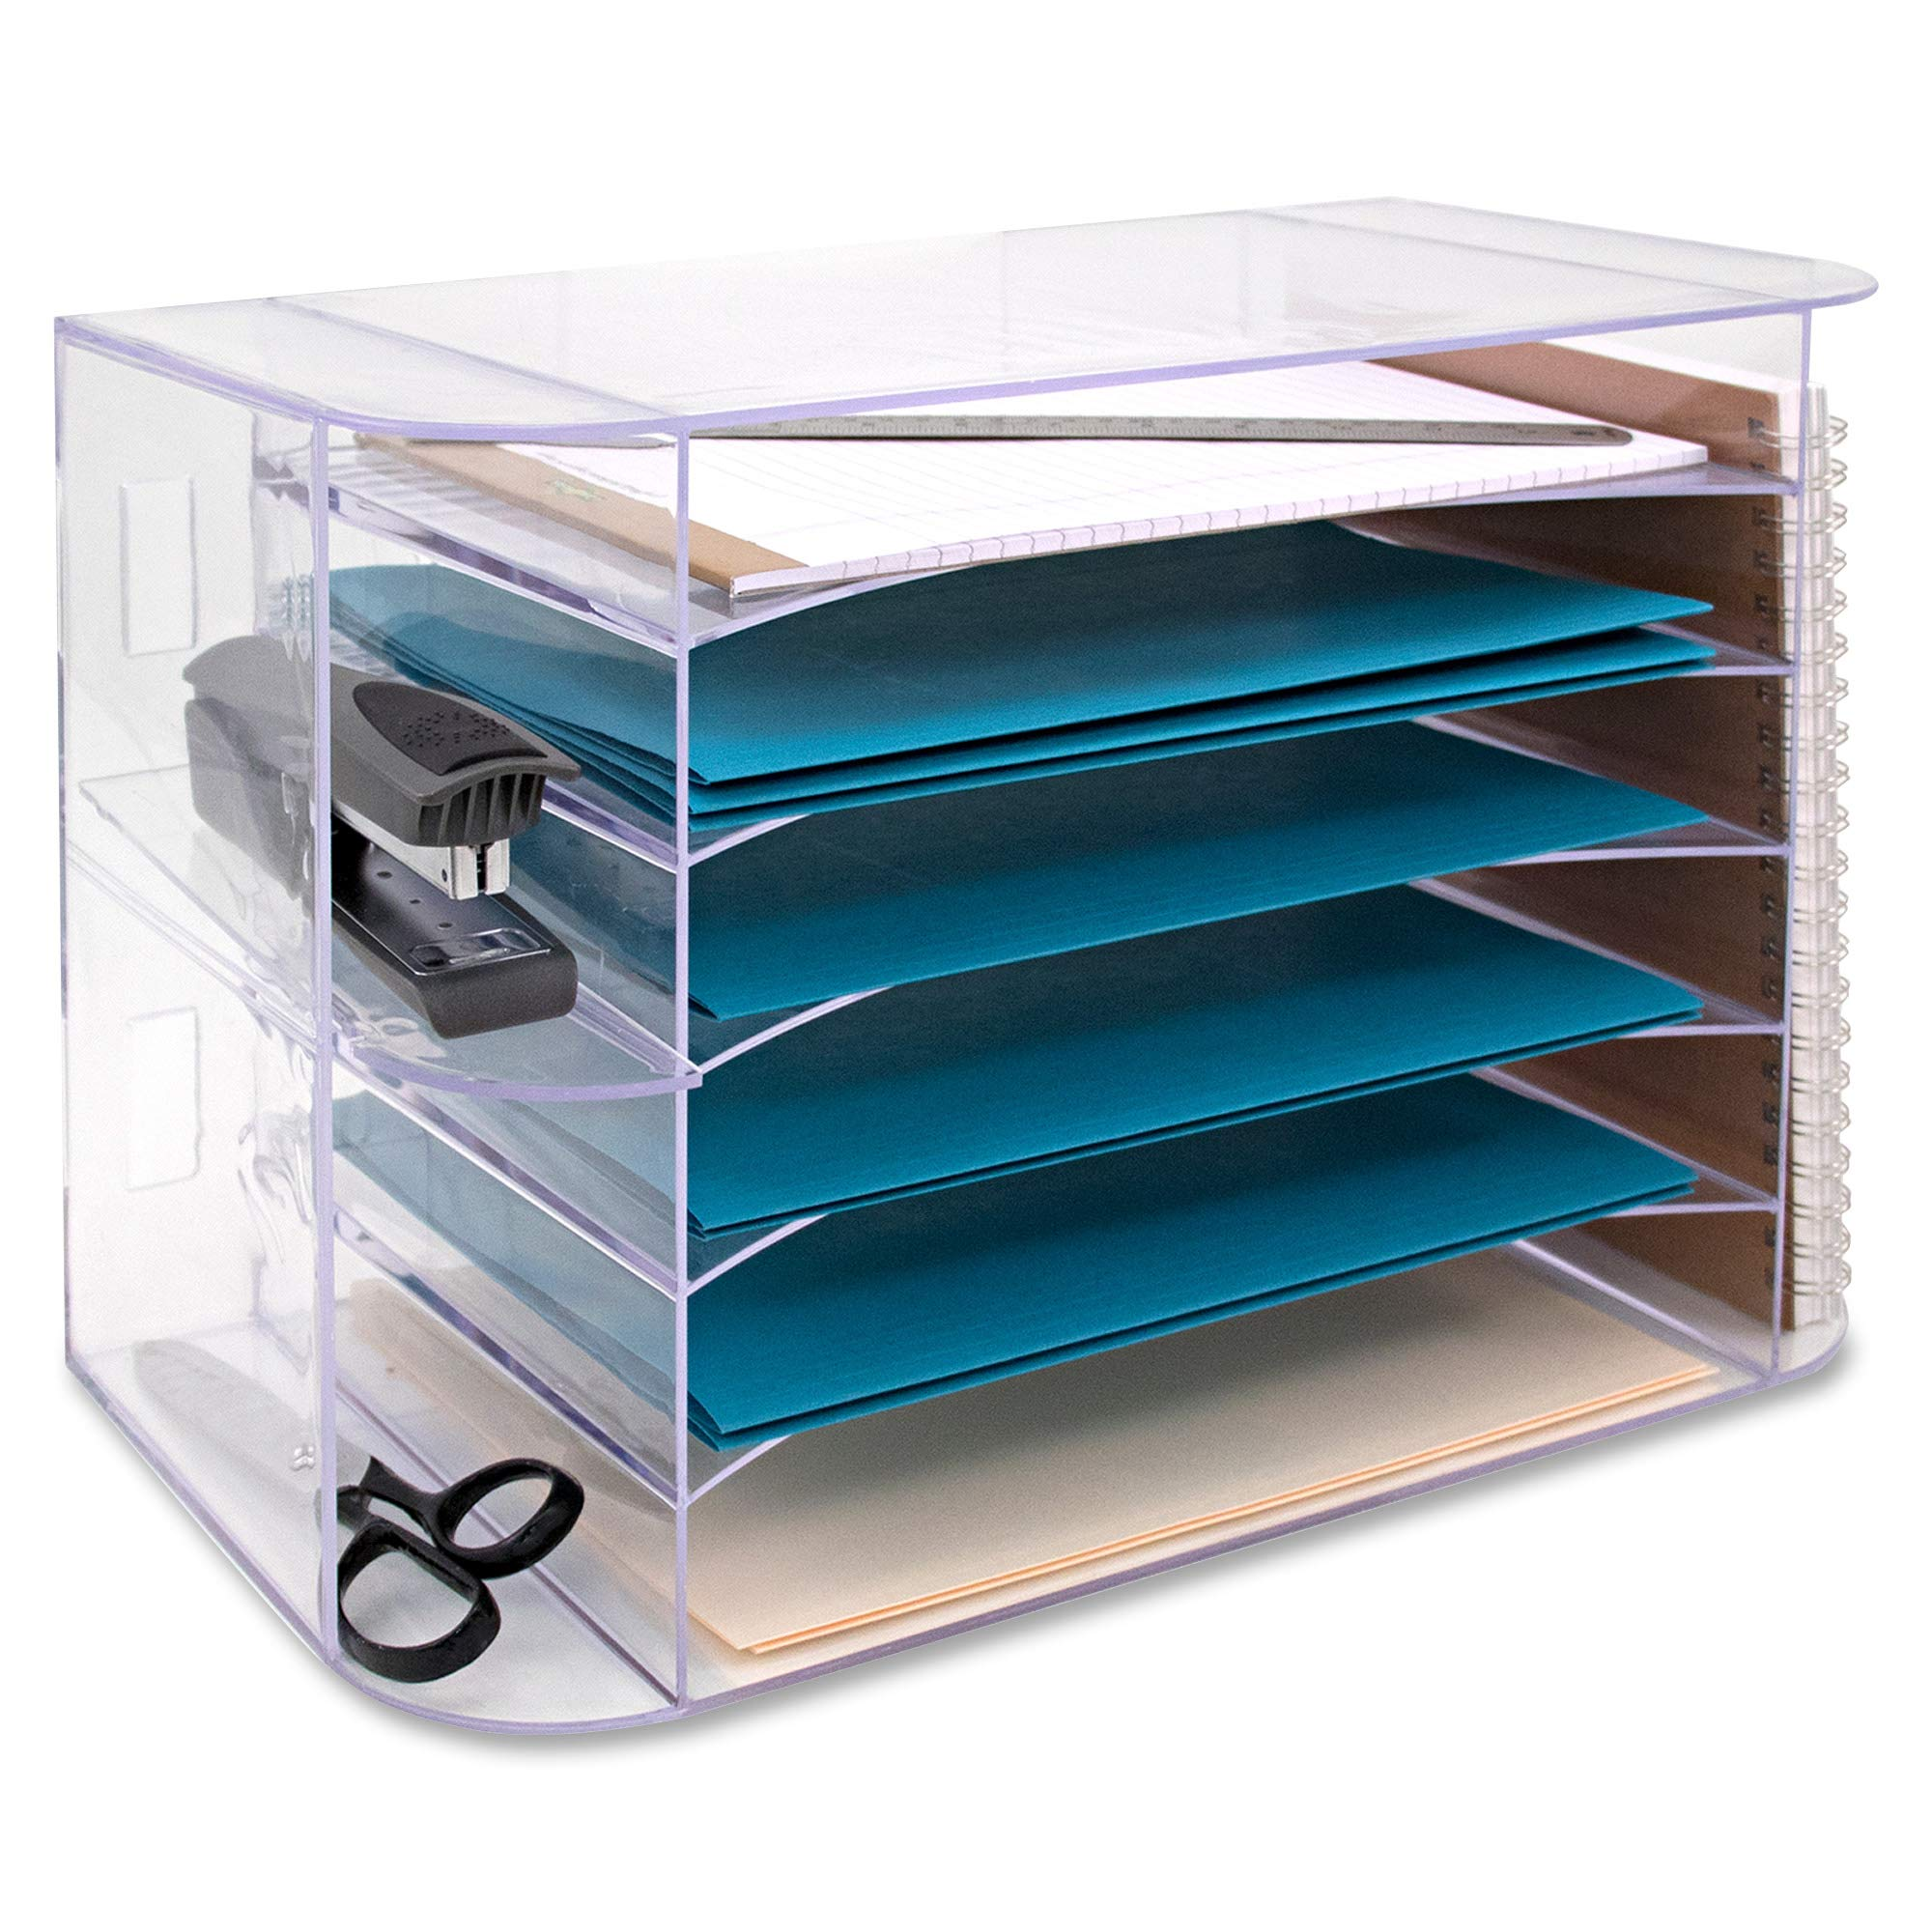 Business Source 6-tray Jumbo Desk Sorter by Business Source